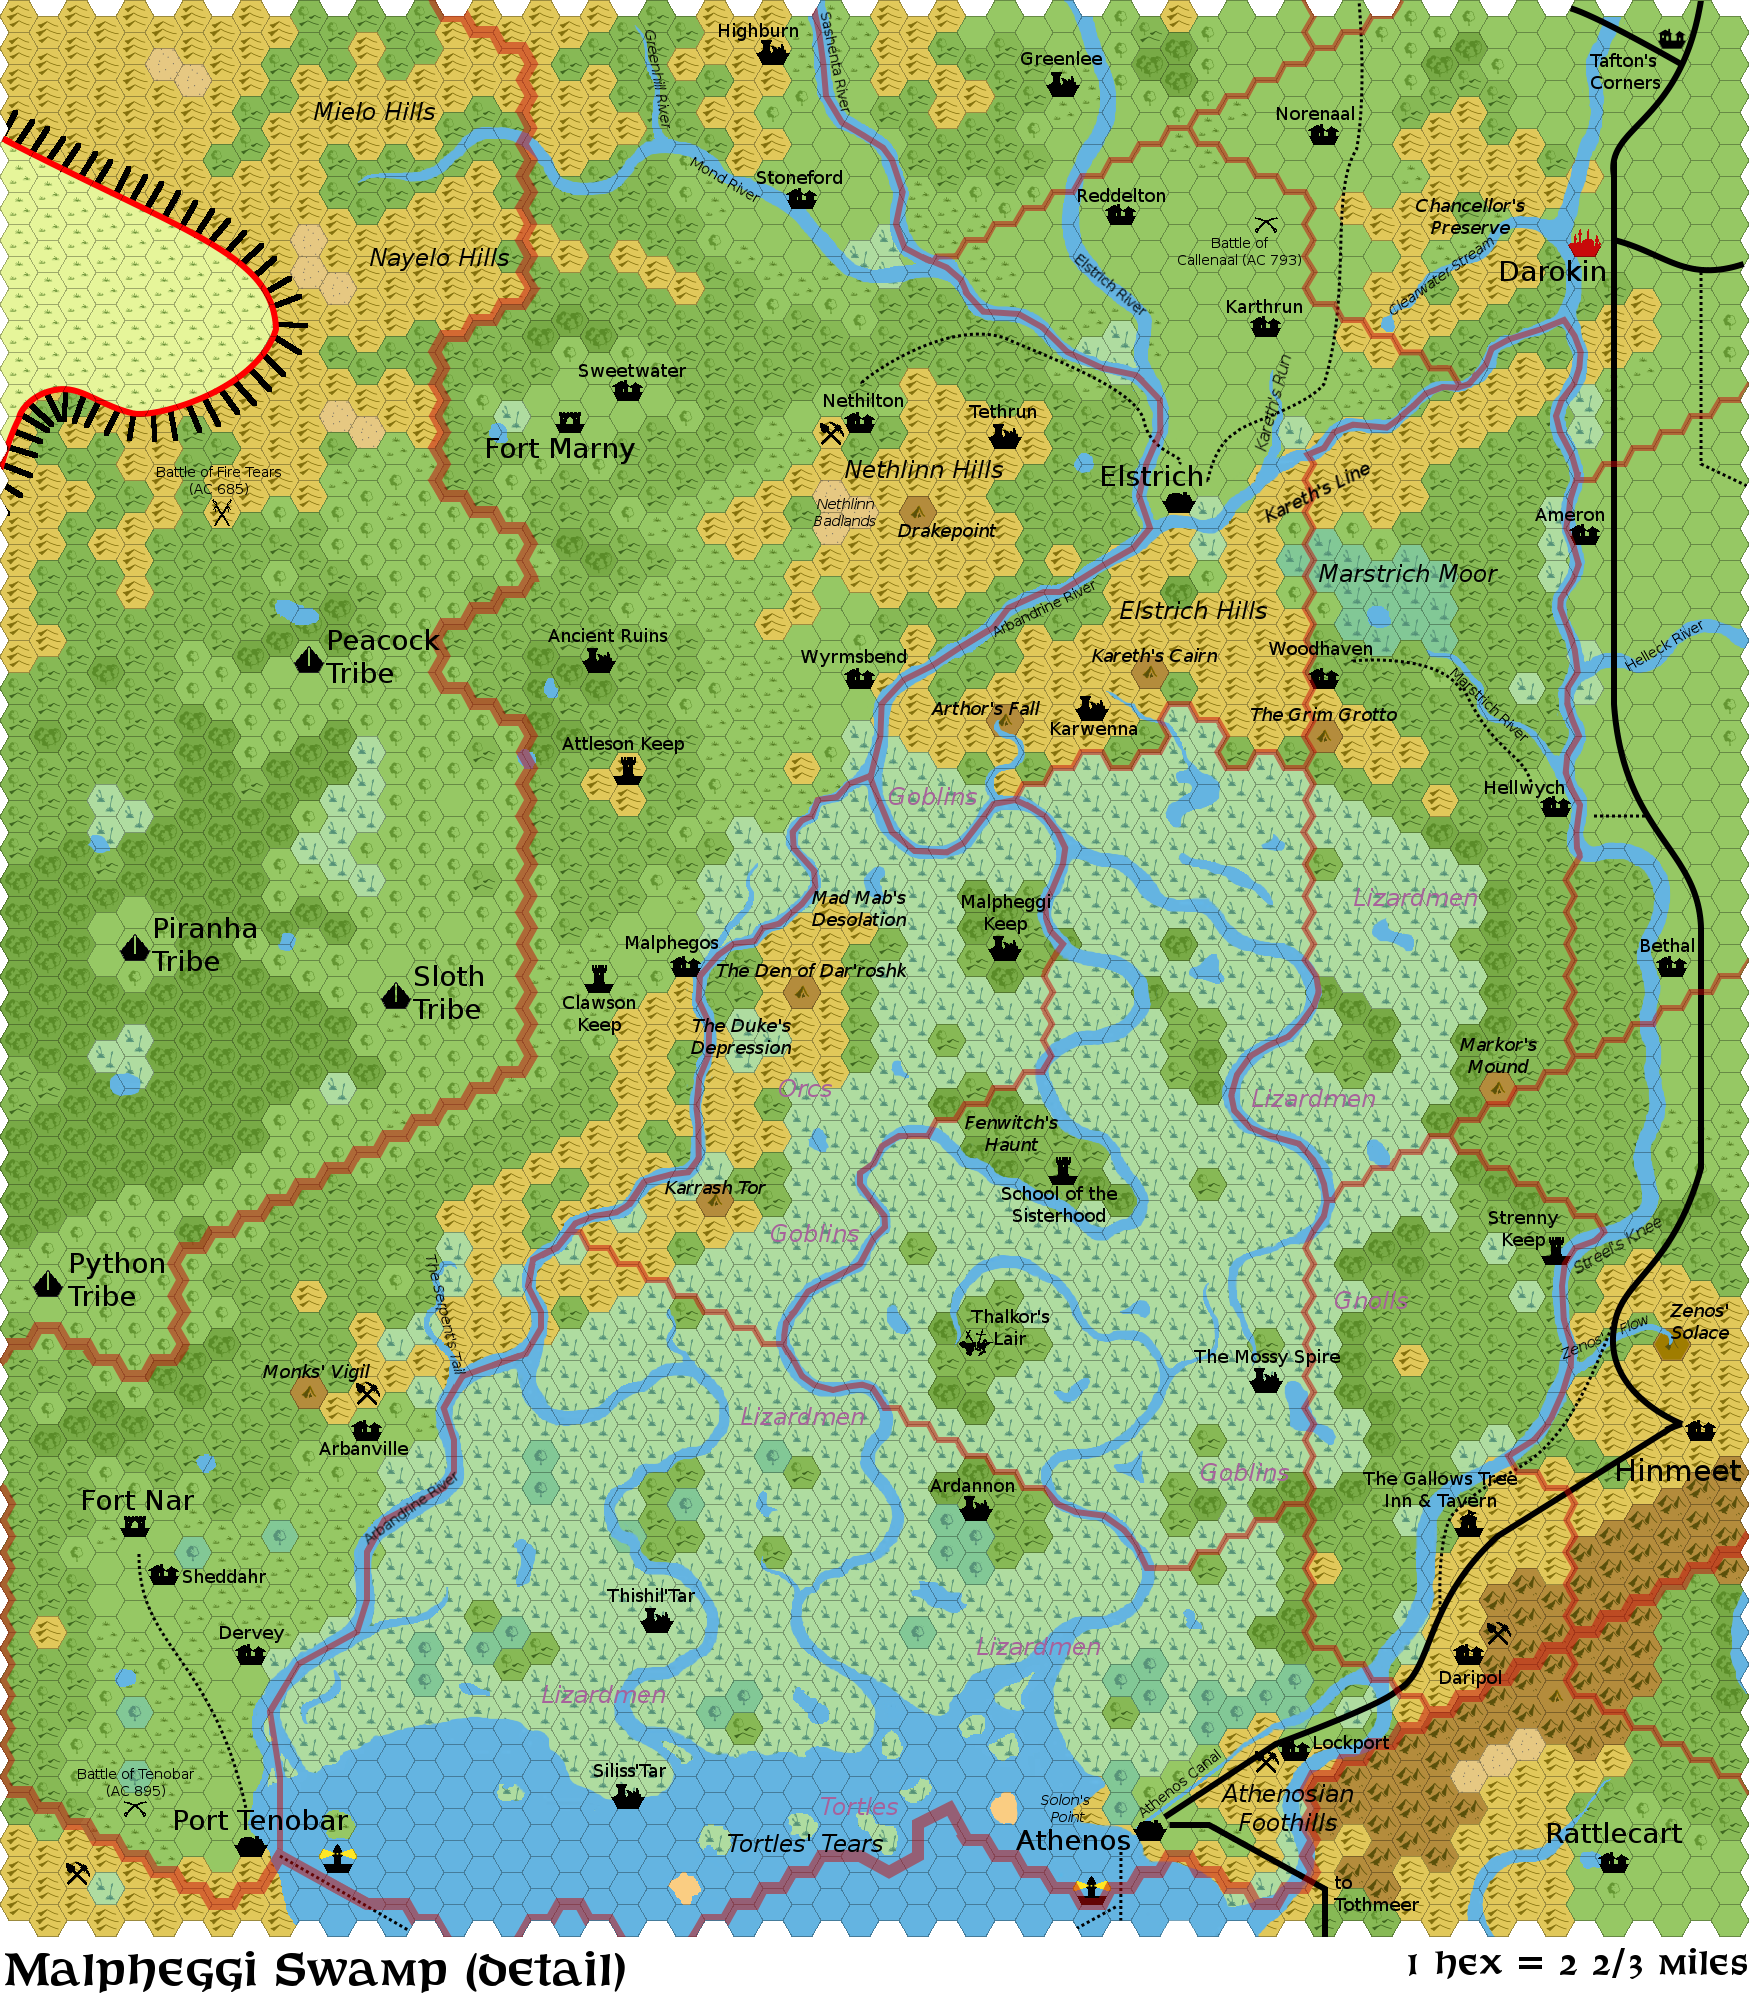 Mapping Around Malpheggi Swamp